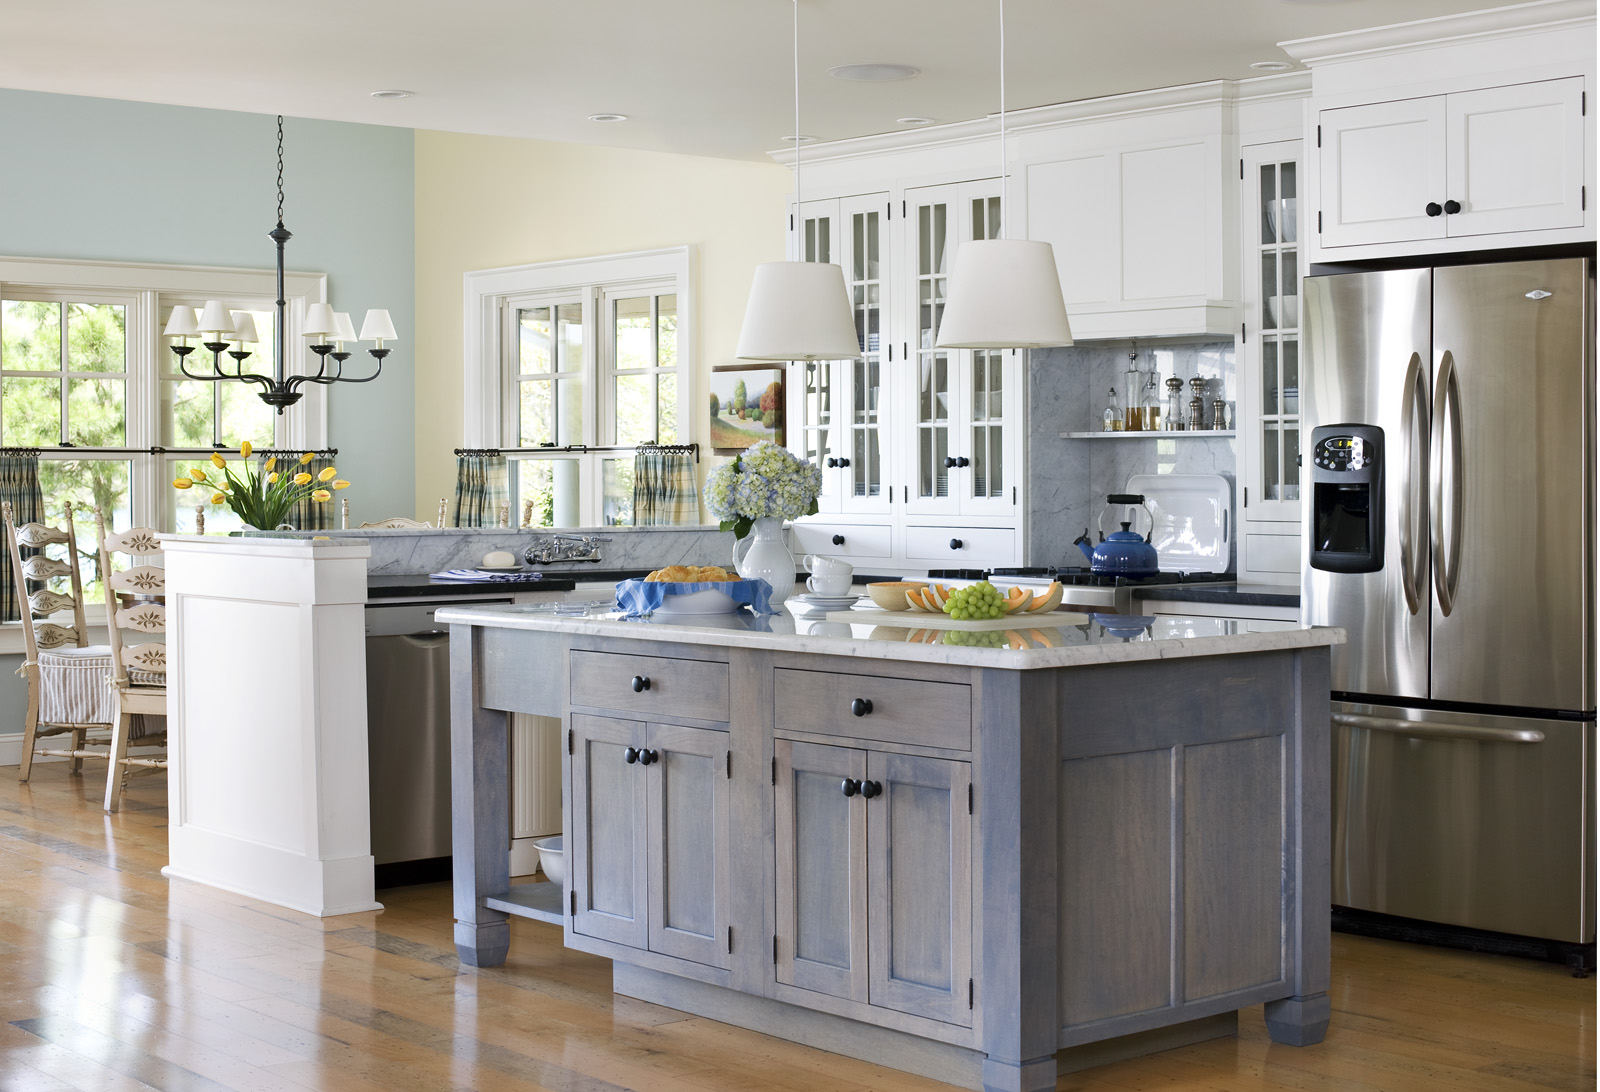 Bright Kitchens New Of Kitchen Wall Colors with Light Cabinets Picture